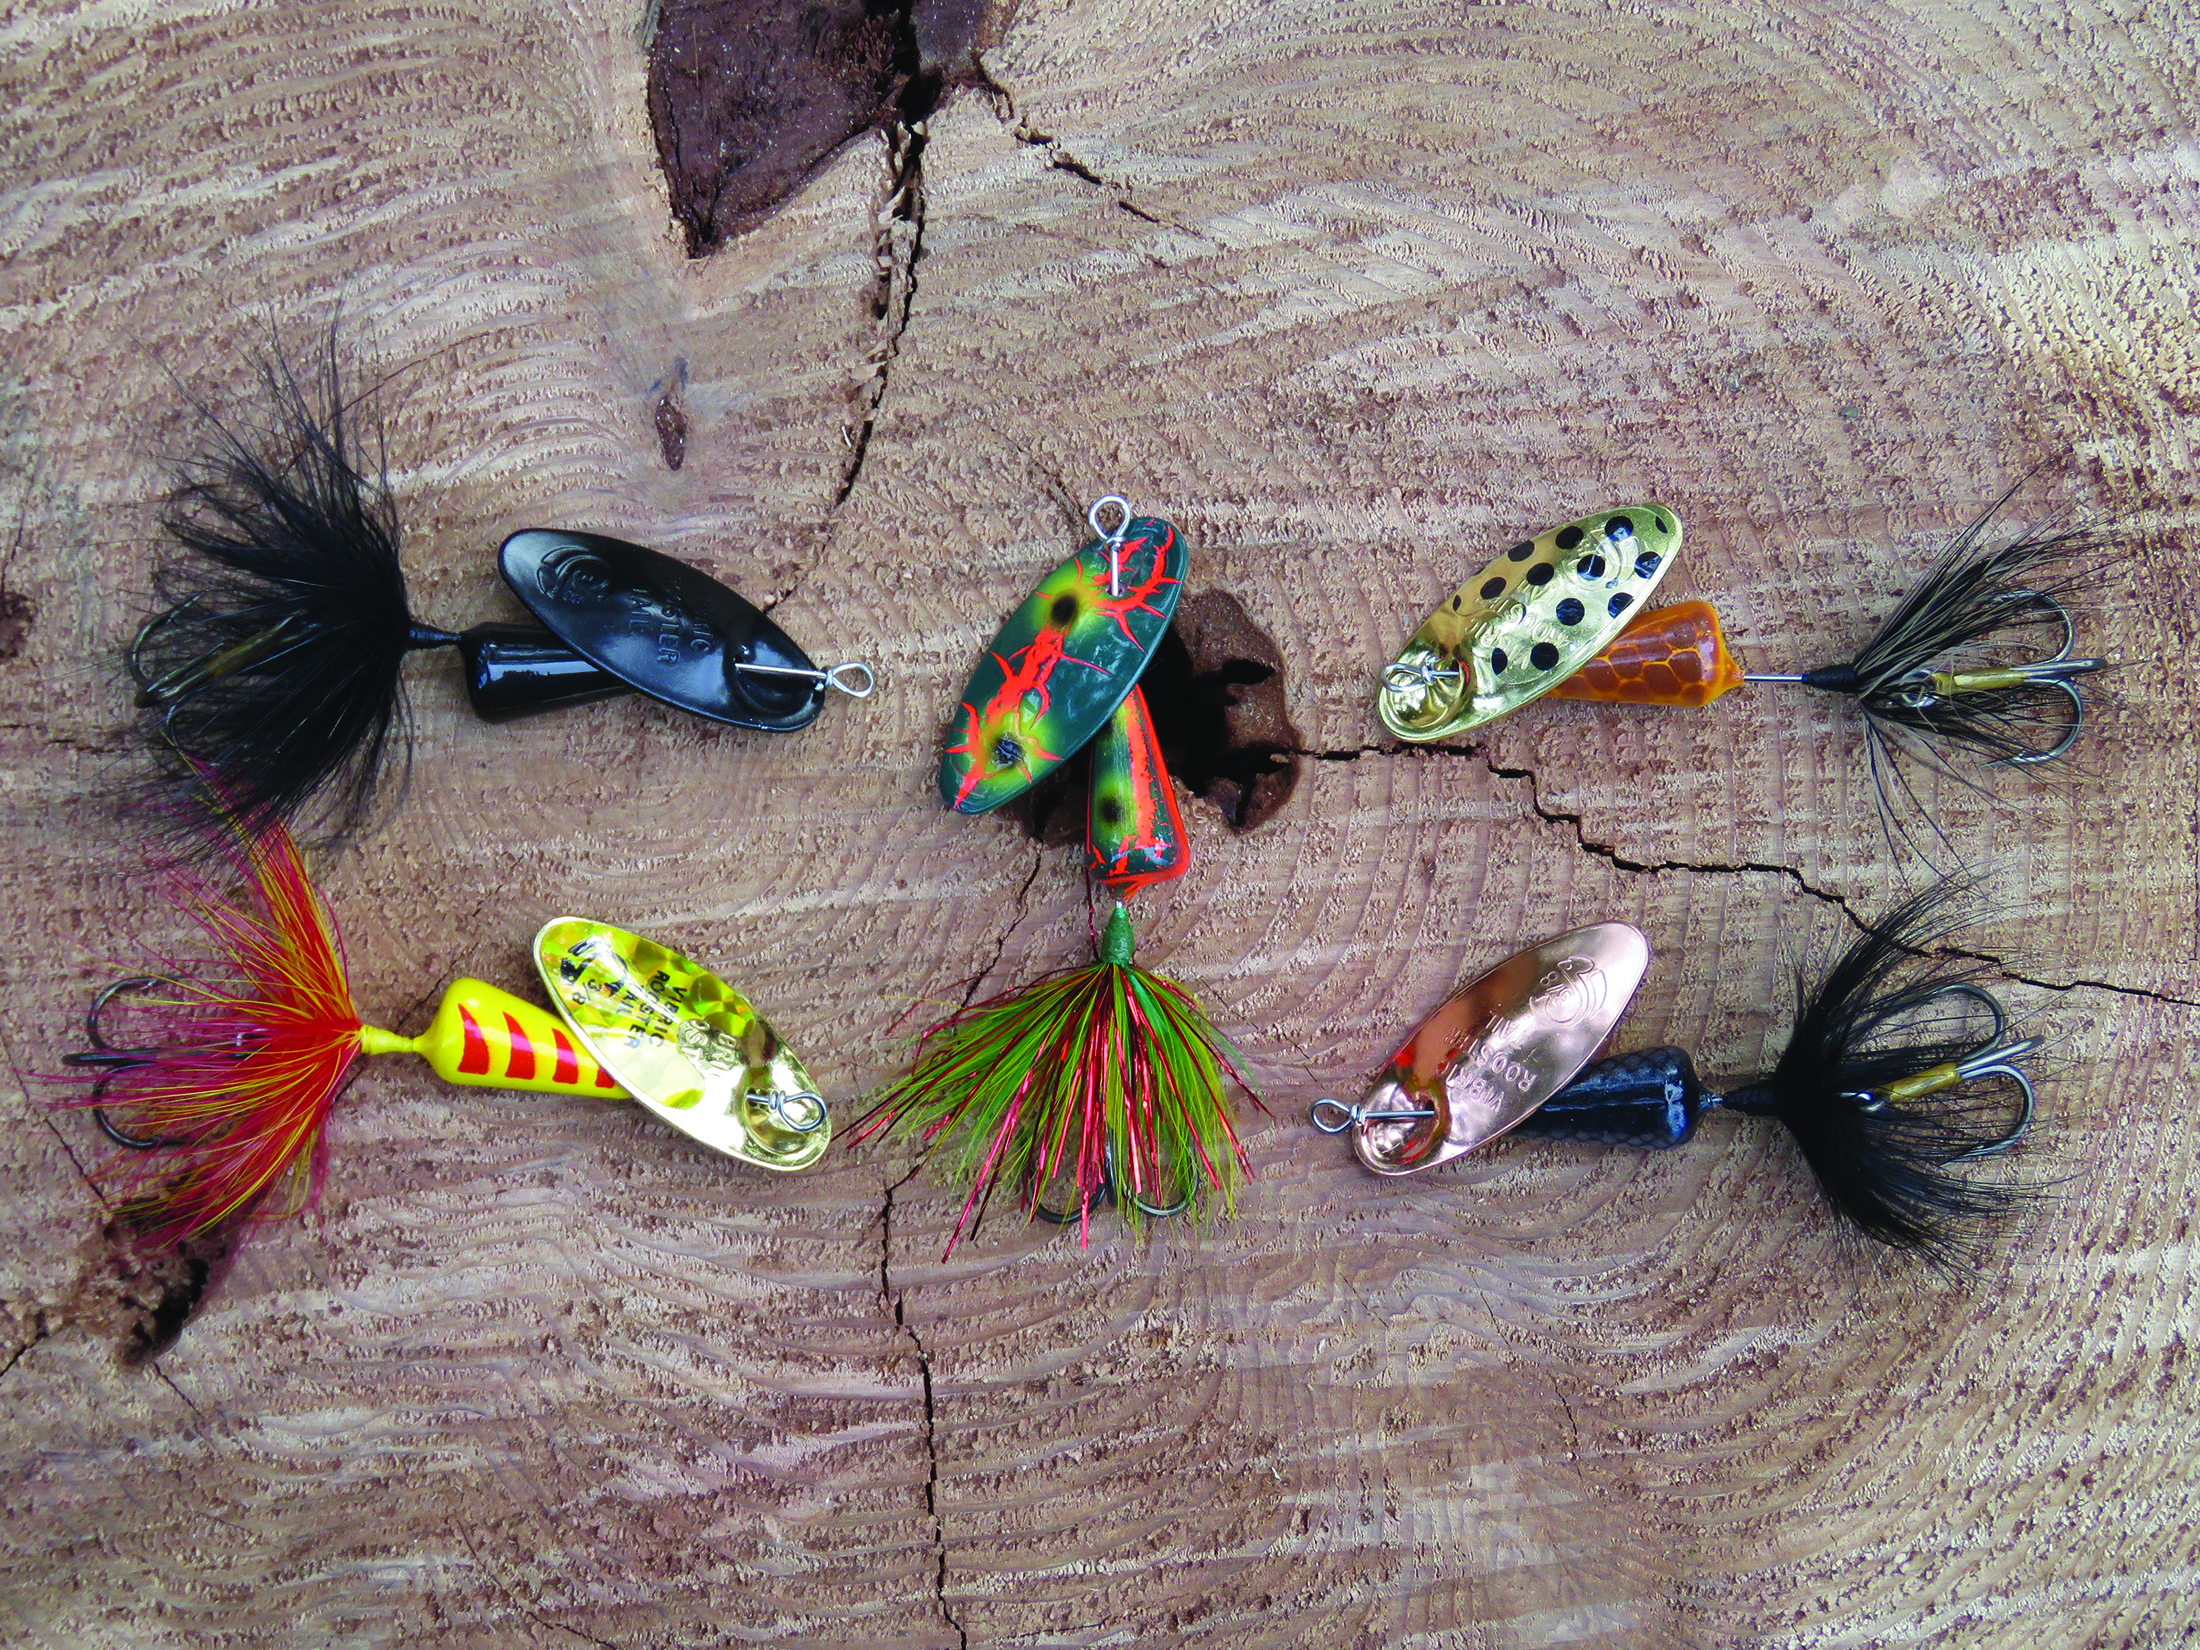 You don't want to overlook spinners when it's time to cast for trout. Here we see a selection of Vibric Rooster Tails. These lures cast well and can be buzzed just beneath the surface or counted down in much the same way you'd fish a spoon. Don't be afraid to add some twitches and pauses to your retrieve.